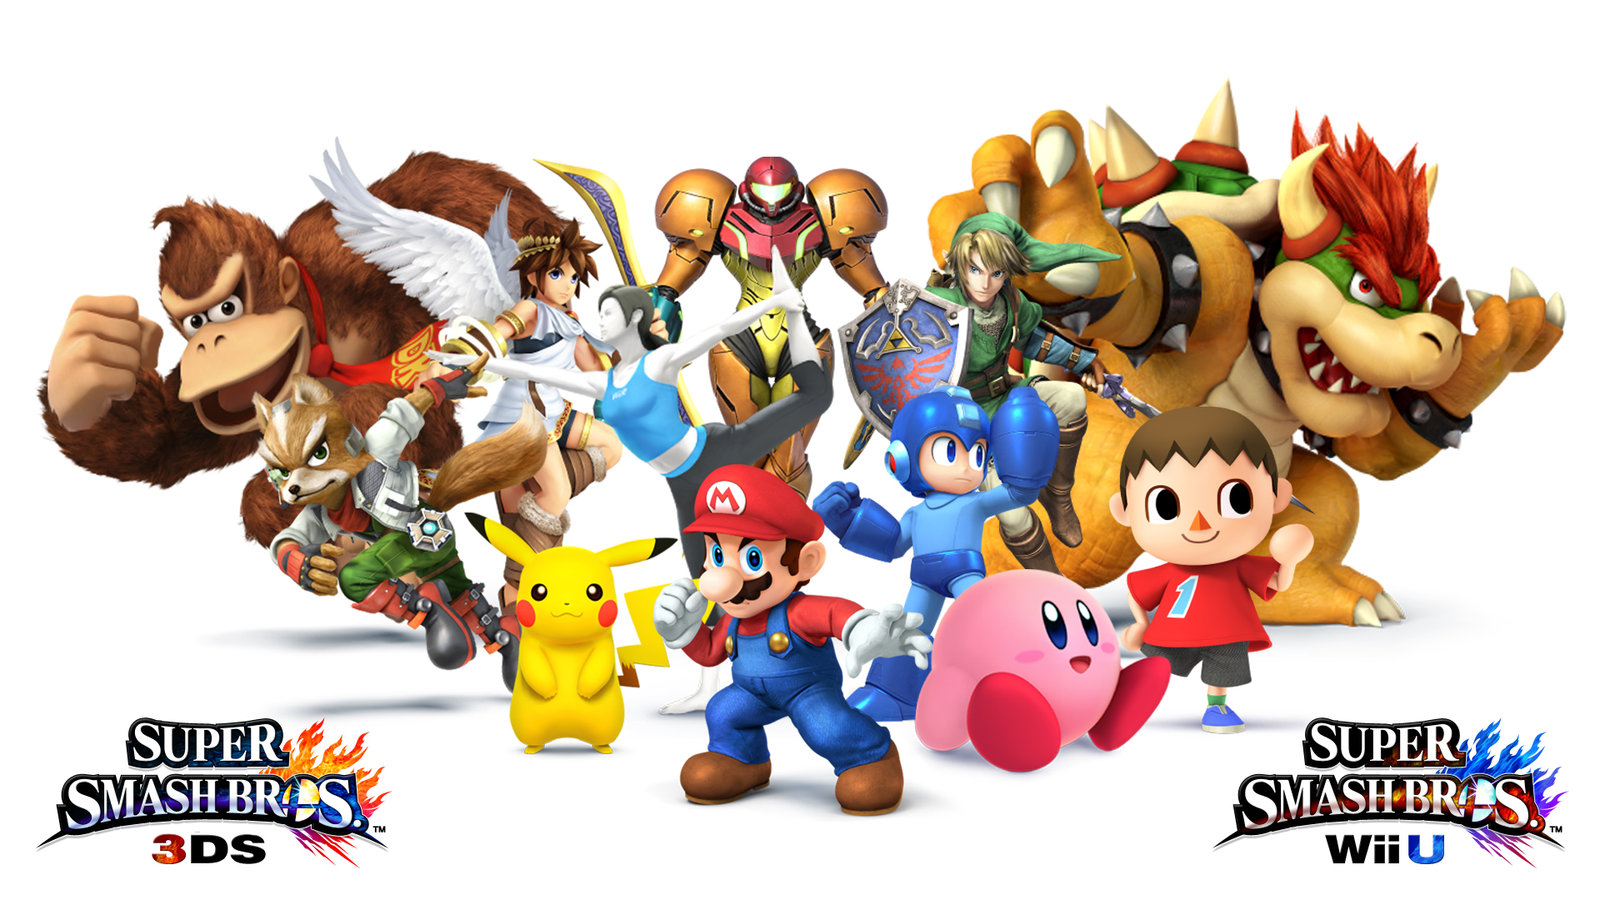 Super Smash Bros. 3DS/Wii U daily – June 27th screen